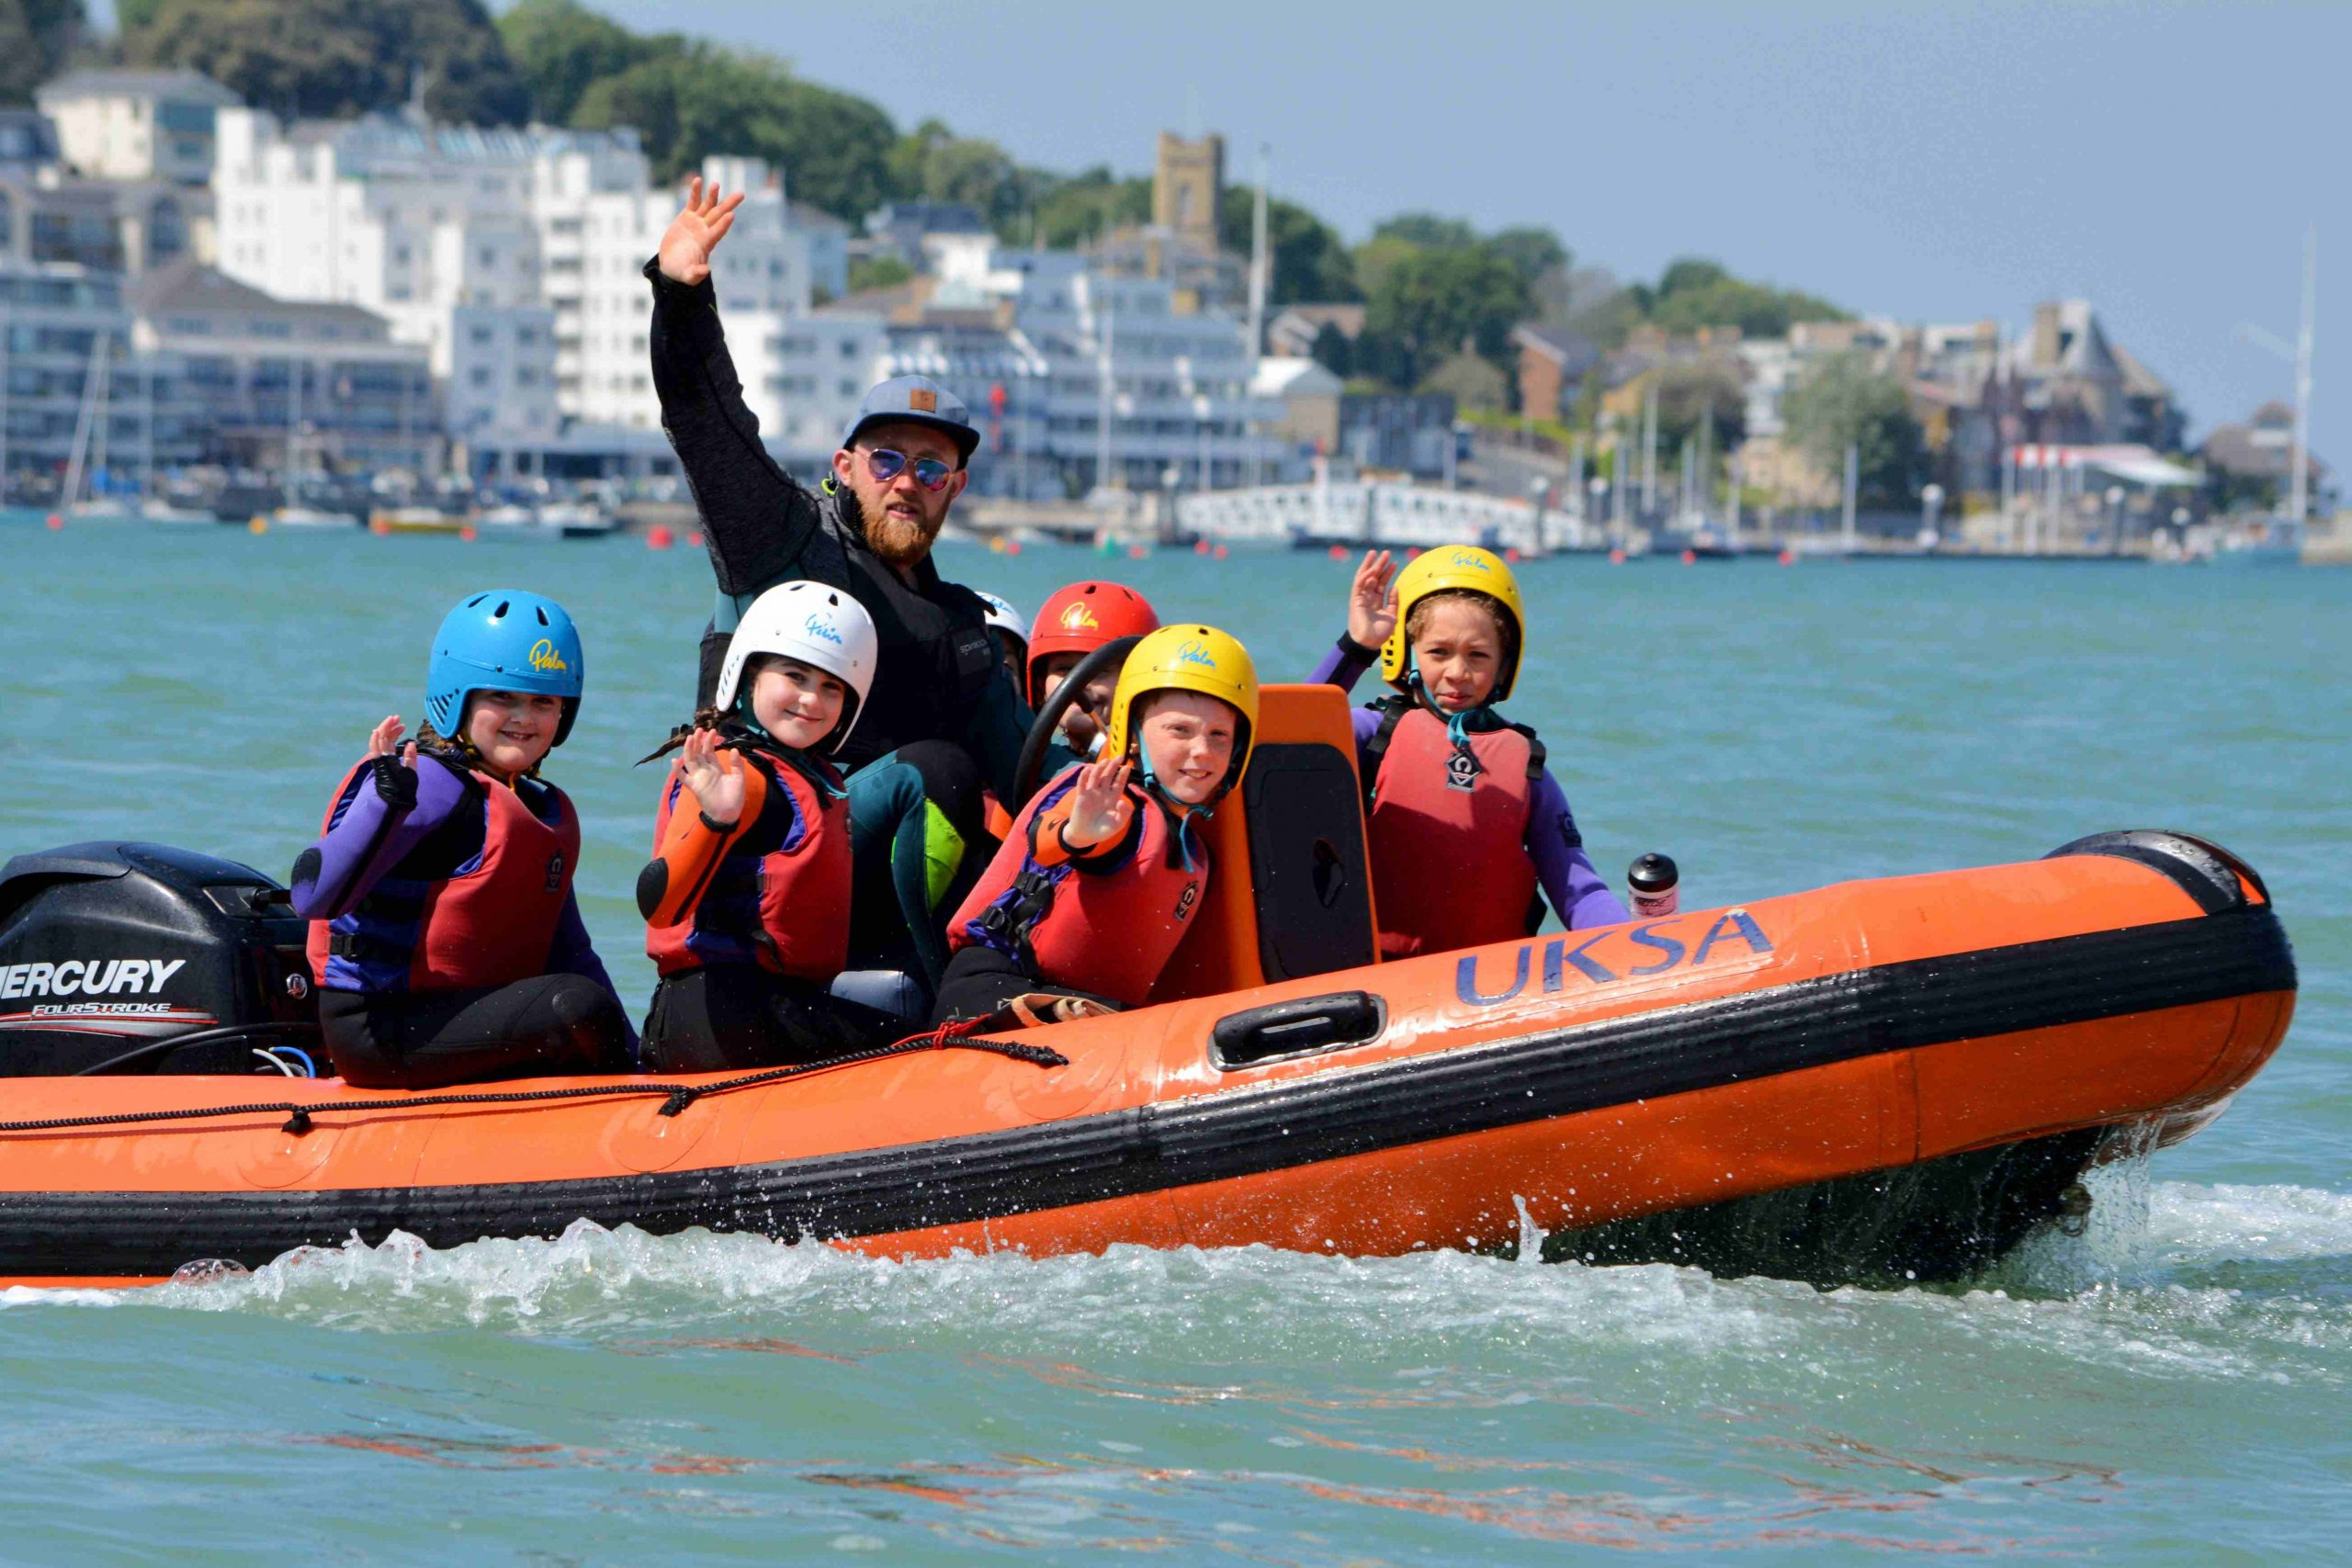 Children and UKSA instructor waving on a powerboat